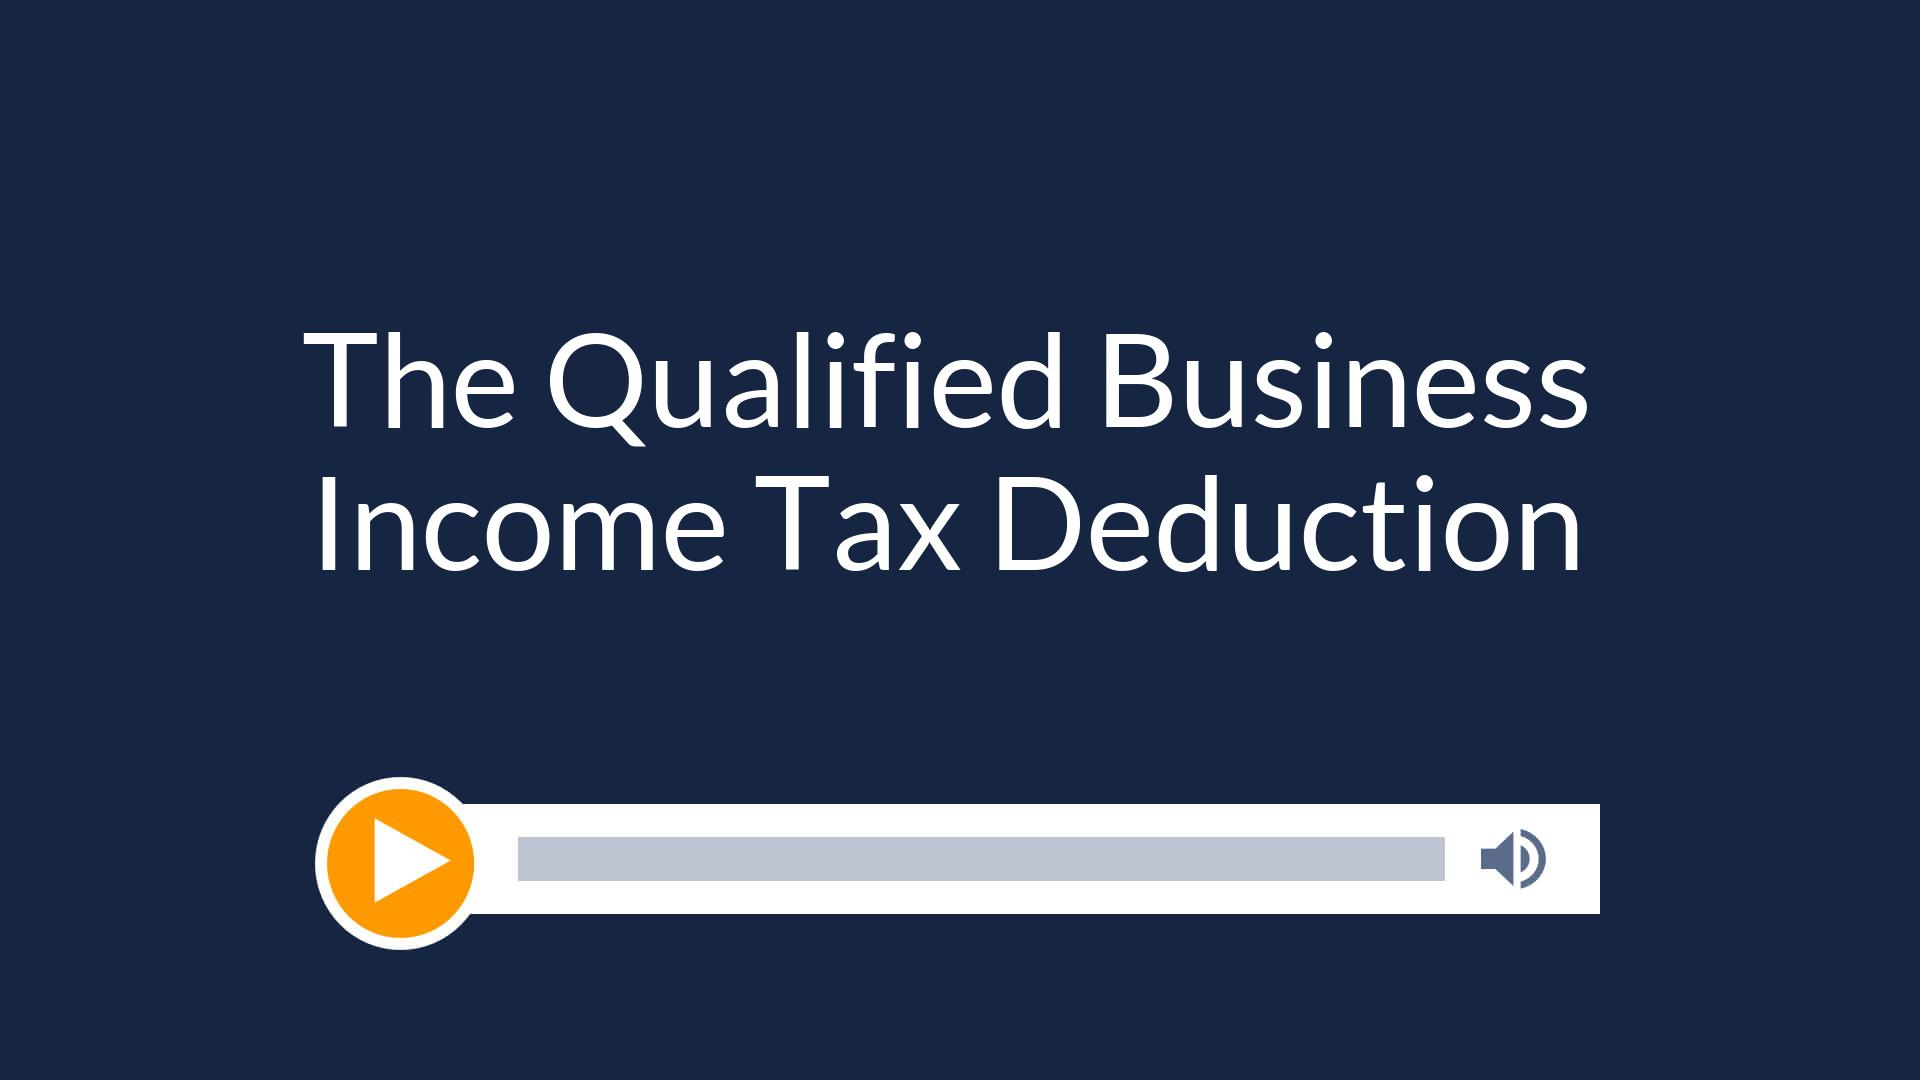 The Qualified Business Income Tax Deduction